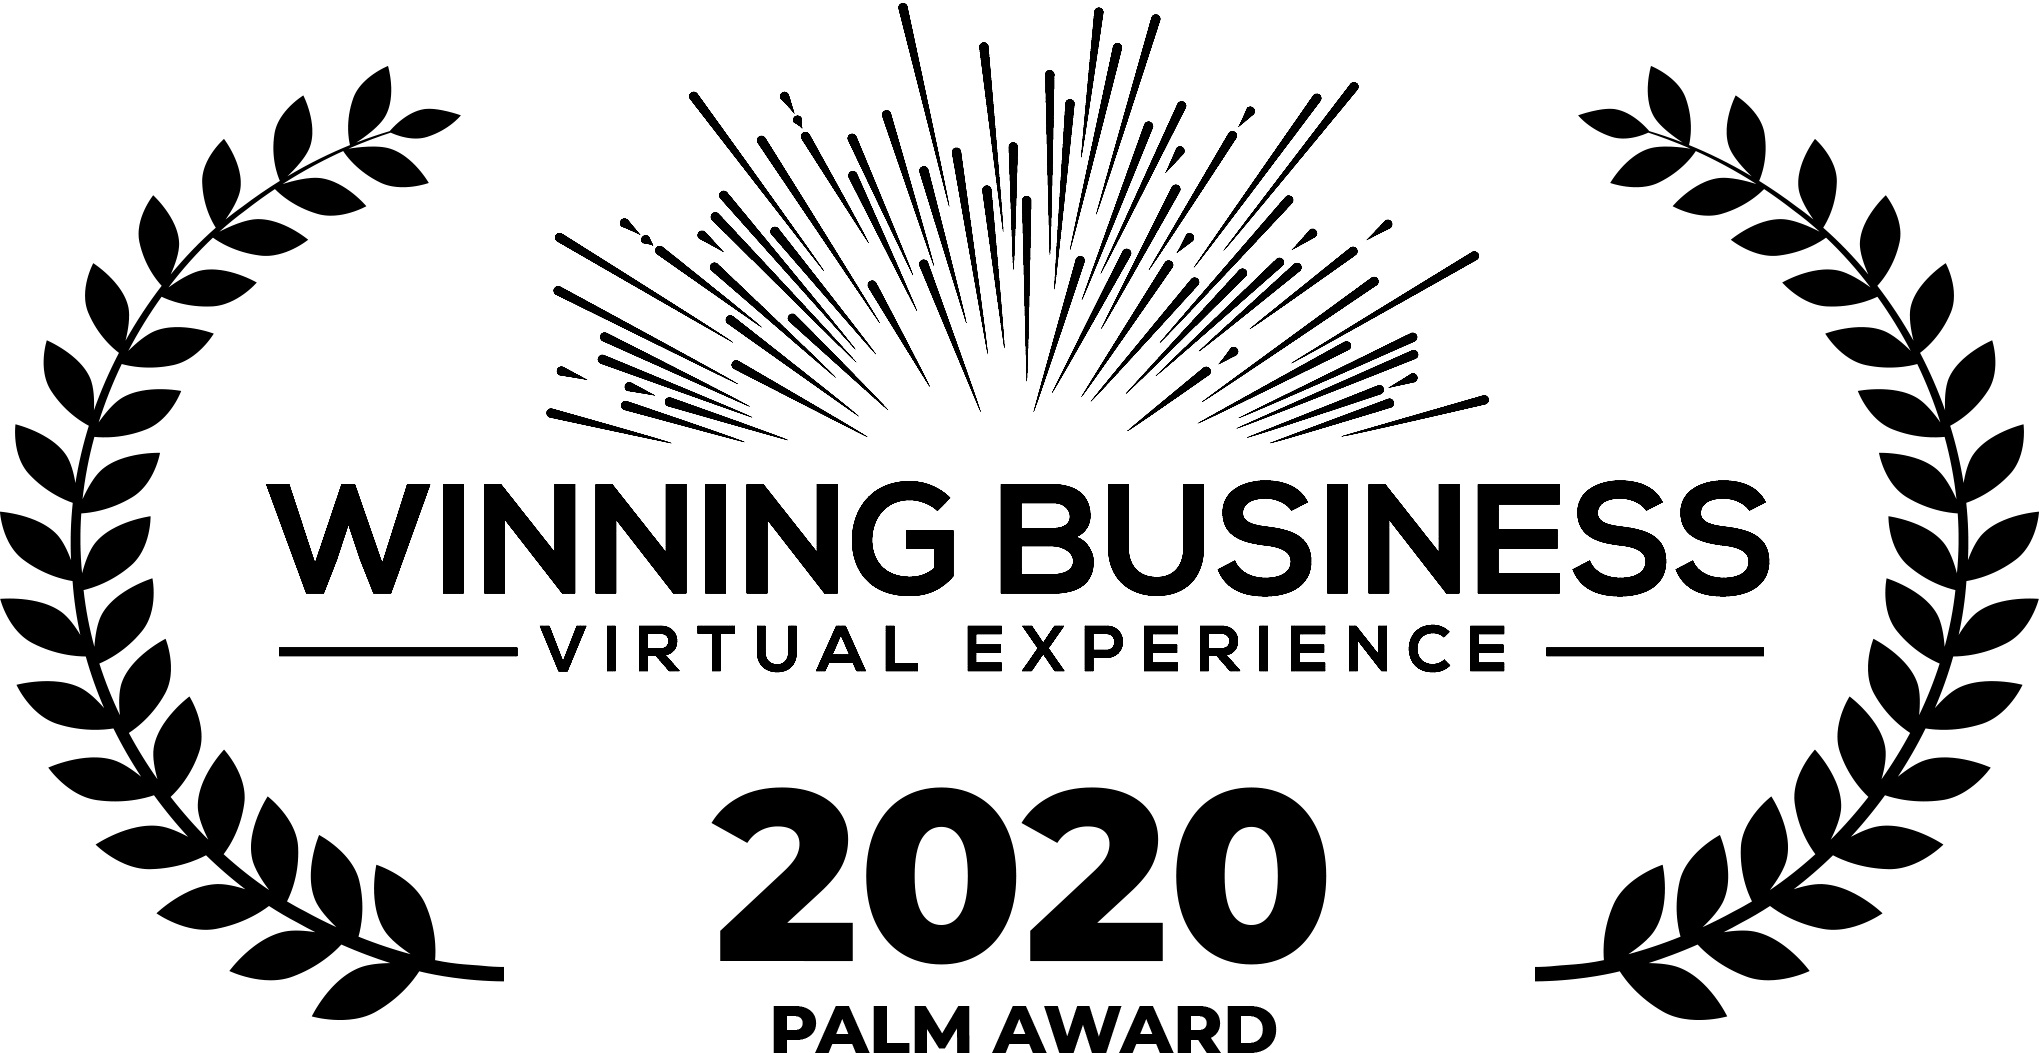 Winner of the APMP Winning Business Virtual Experience Palm Award given to the 4 must-see presentations